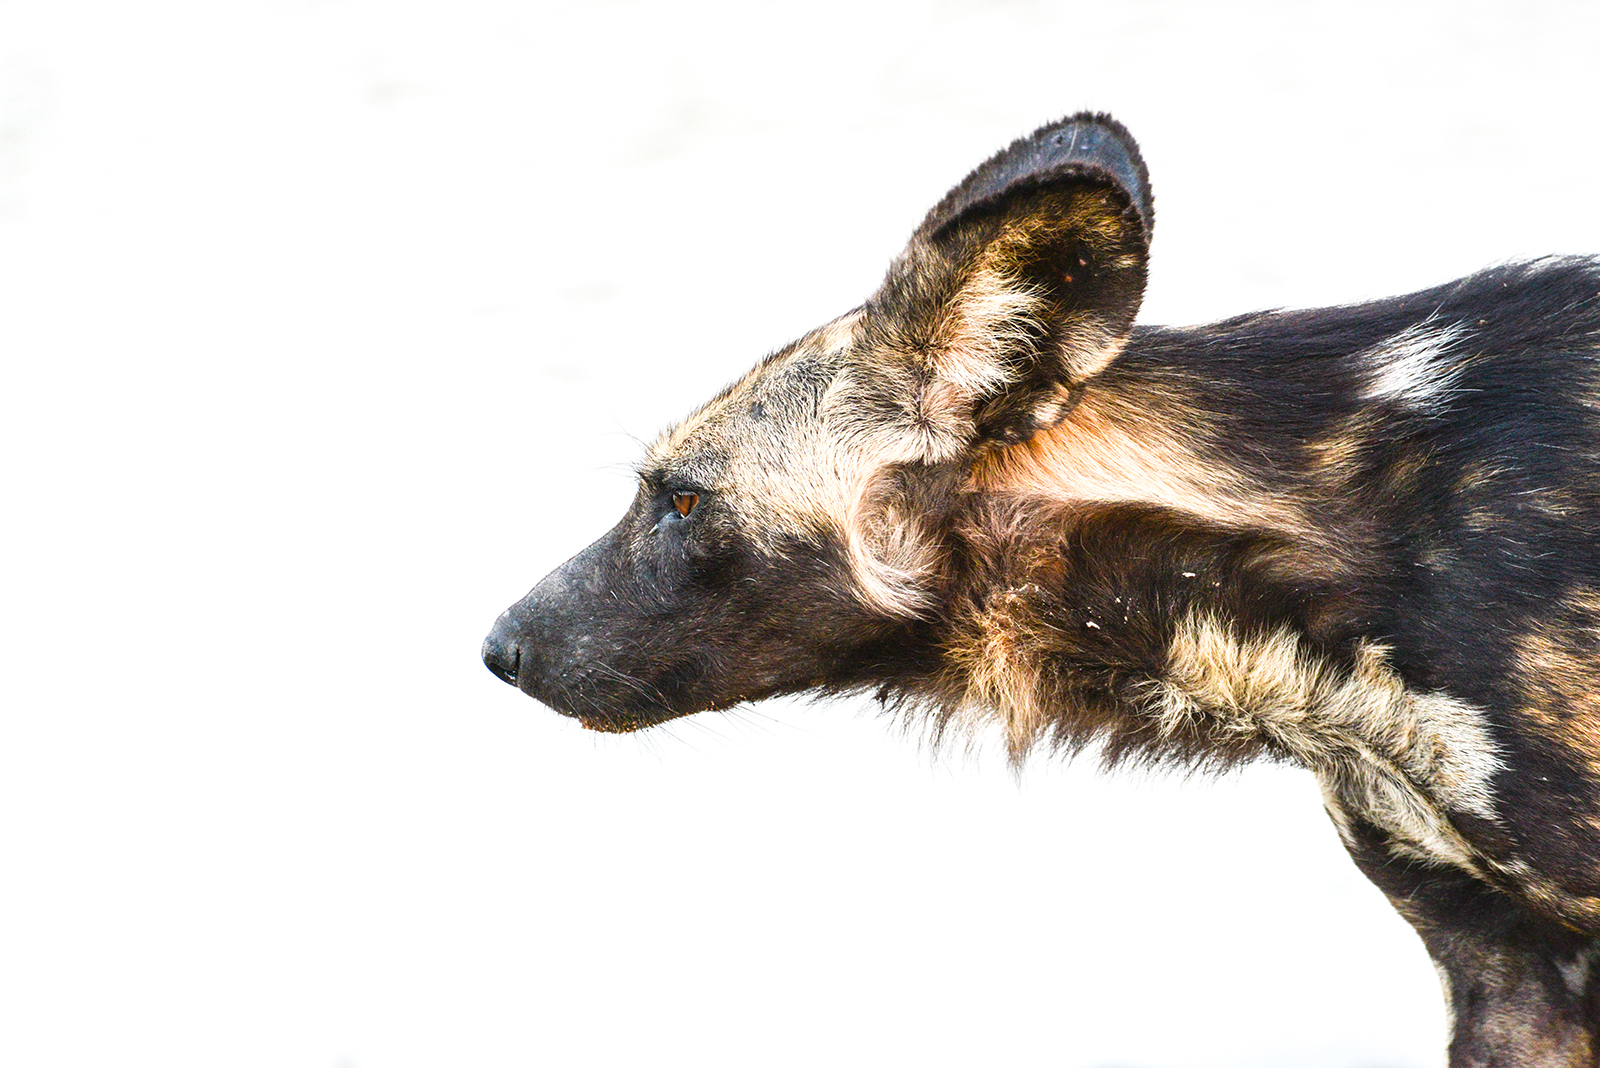 African Wild Dog - Image : Kevin MacLaughlin